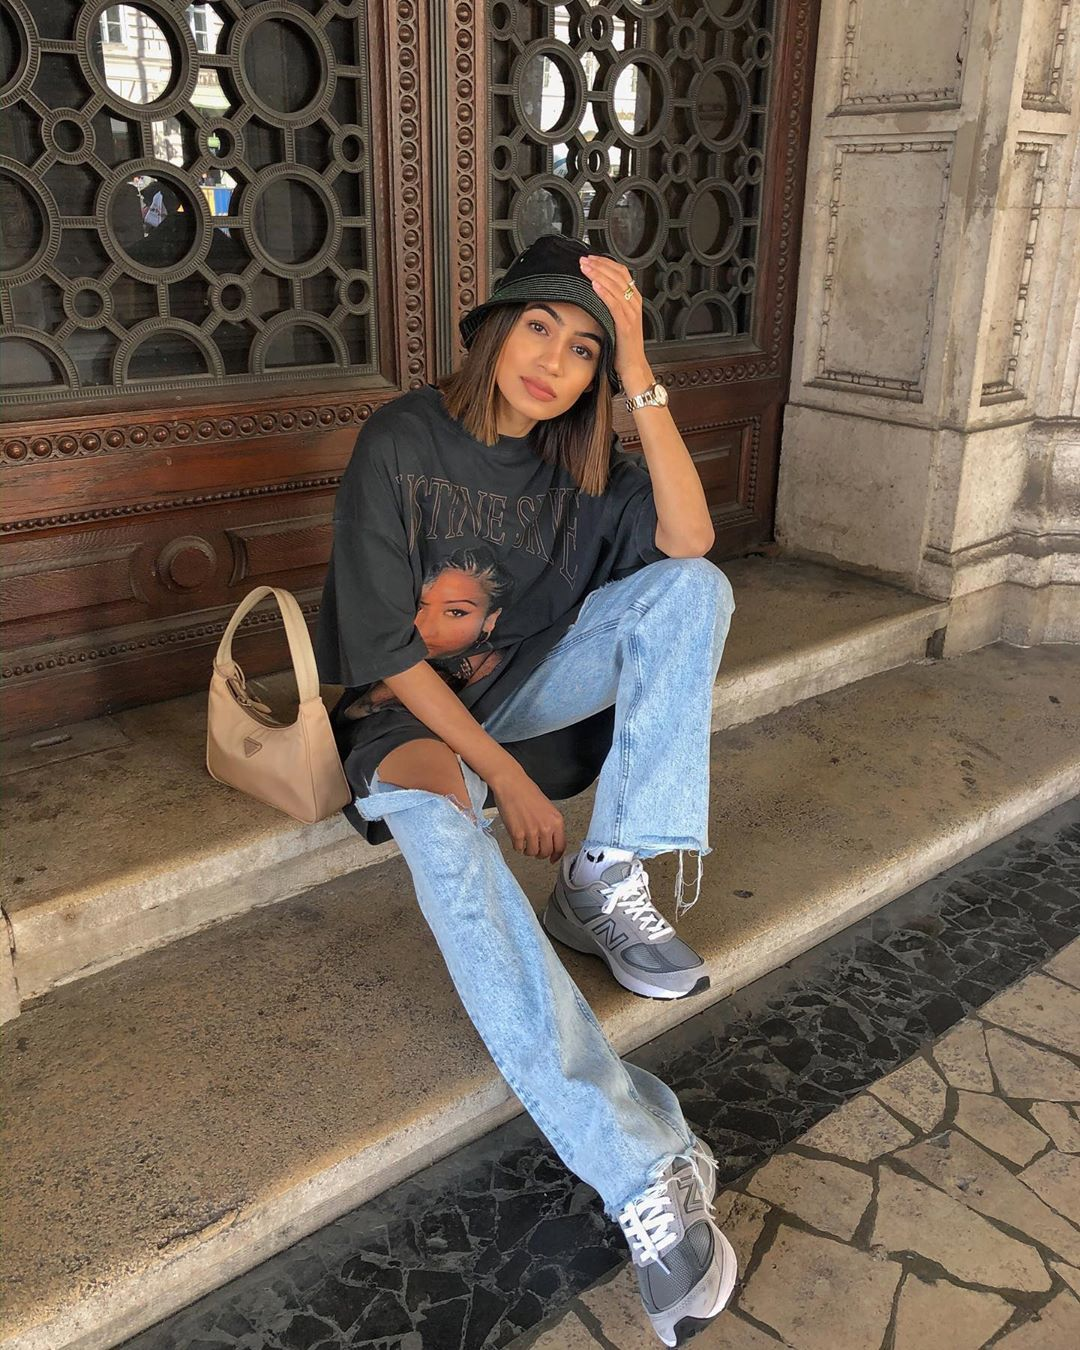 Photo via: @soniaheartsfashion  Relaxed days call for equally chill outfits and we are currently loving this low-key look. Perfect for days at home this combination of an oversized t-shirt baggy jeans sneakers and a bucket hat looks easy and effortless. Shop our favorite casual pieces below.  - Daily Fashion and Style Inspo - beautiful models and runway shows - casual street fashion - clothing for the modern professional woman and busy mother - outfit of the day OOTD ideas - haute couture - gorg